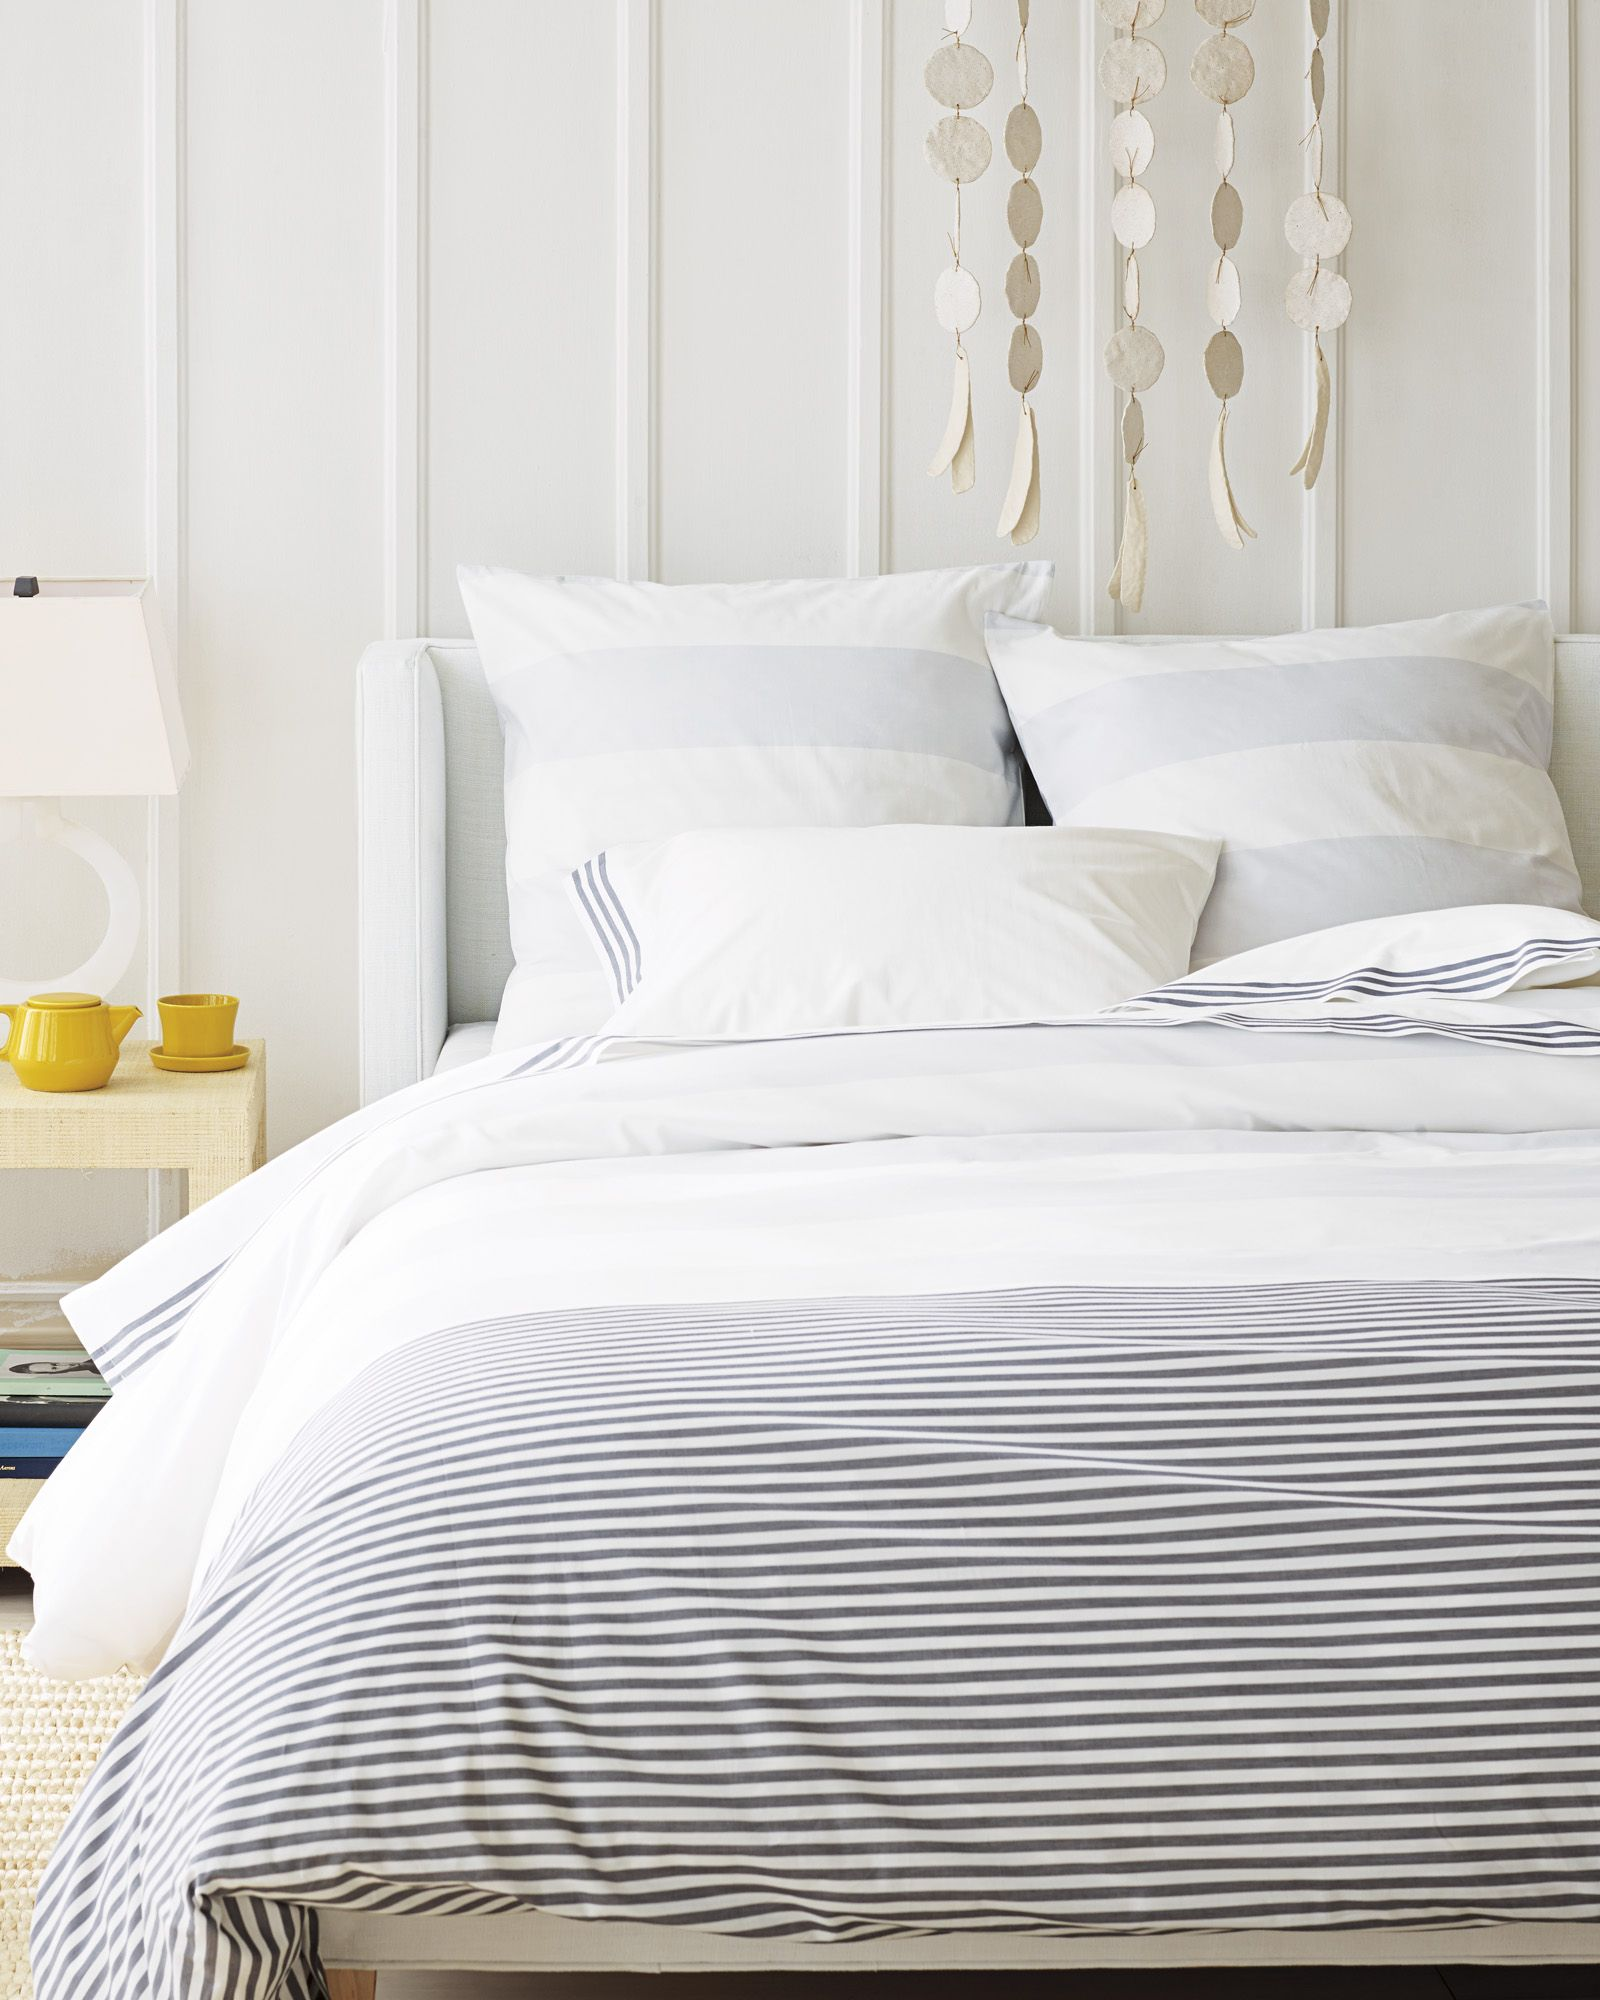 info and green pale stripes crib covers striped cover set hrcouncil full size navy patterned twin home red doona courtney pattern king quilt duvet pirate single uk floral white s of bed black ikea double yellow design sets stripe duvets fabric with blue decorating bedding ideas